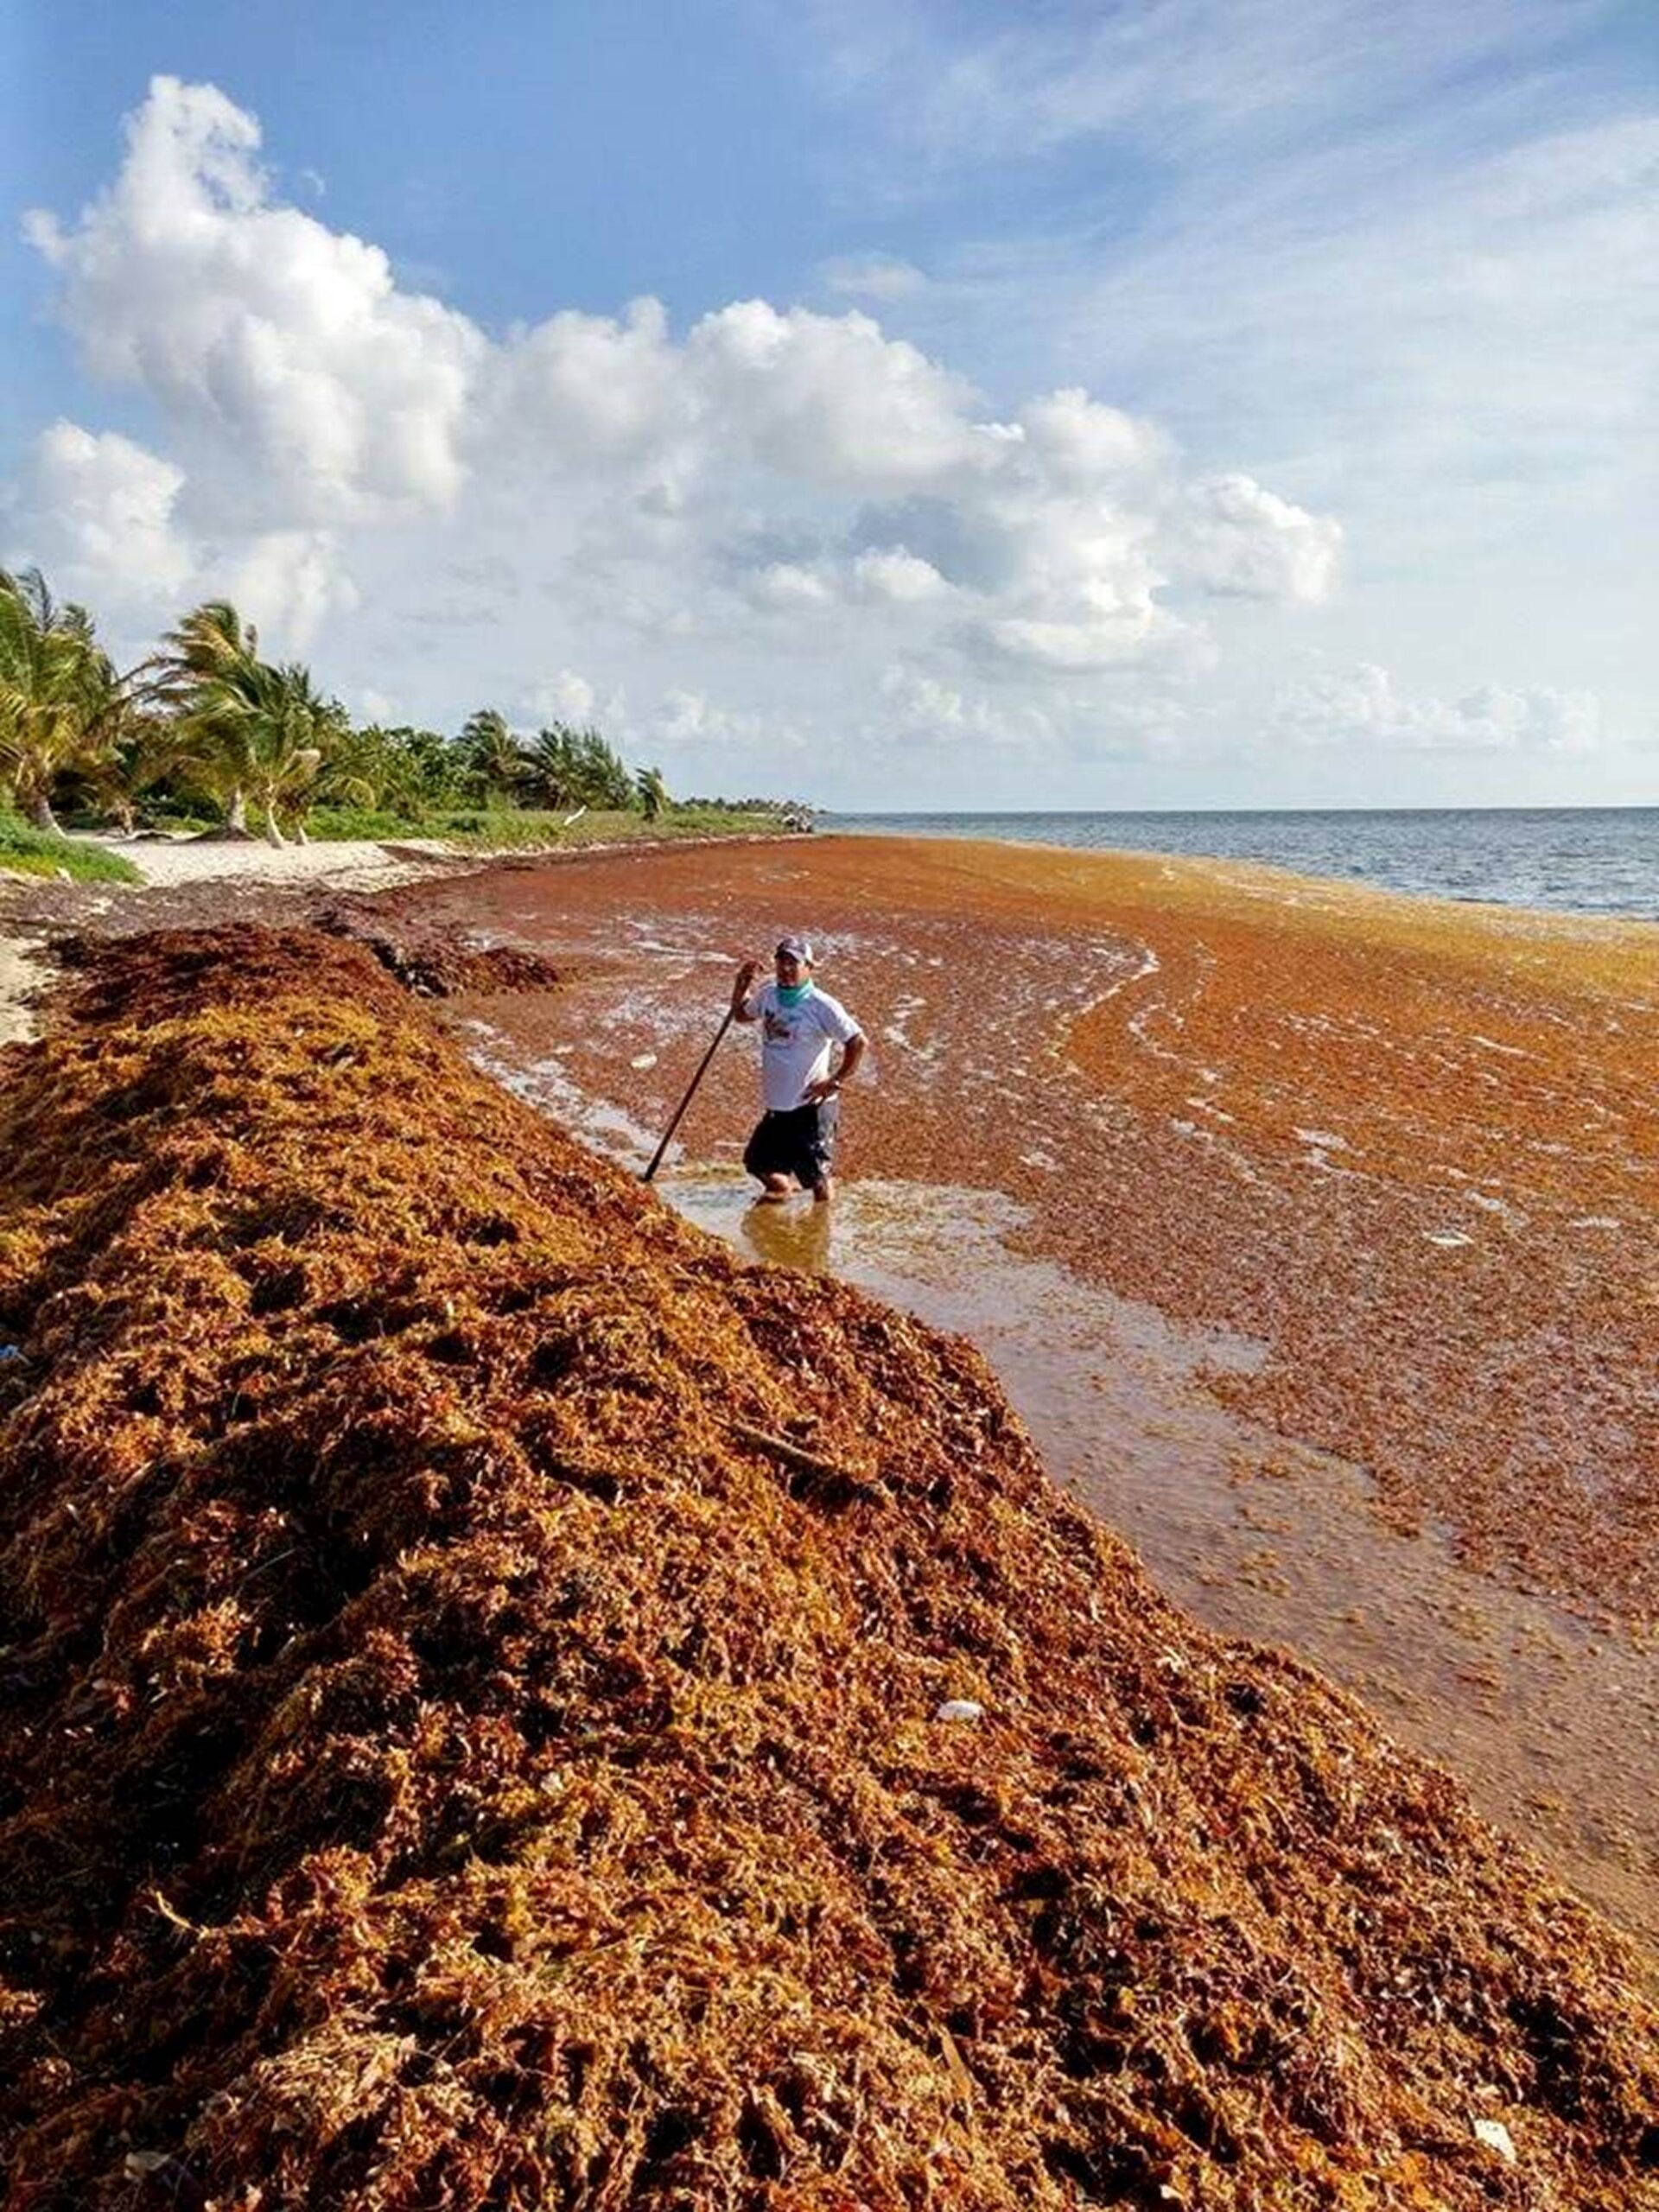 Seaweed Invasion on Mexican beaches